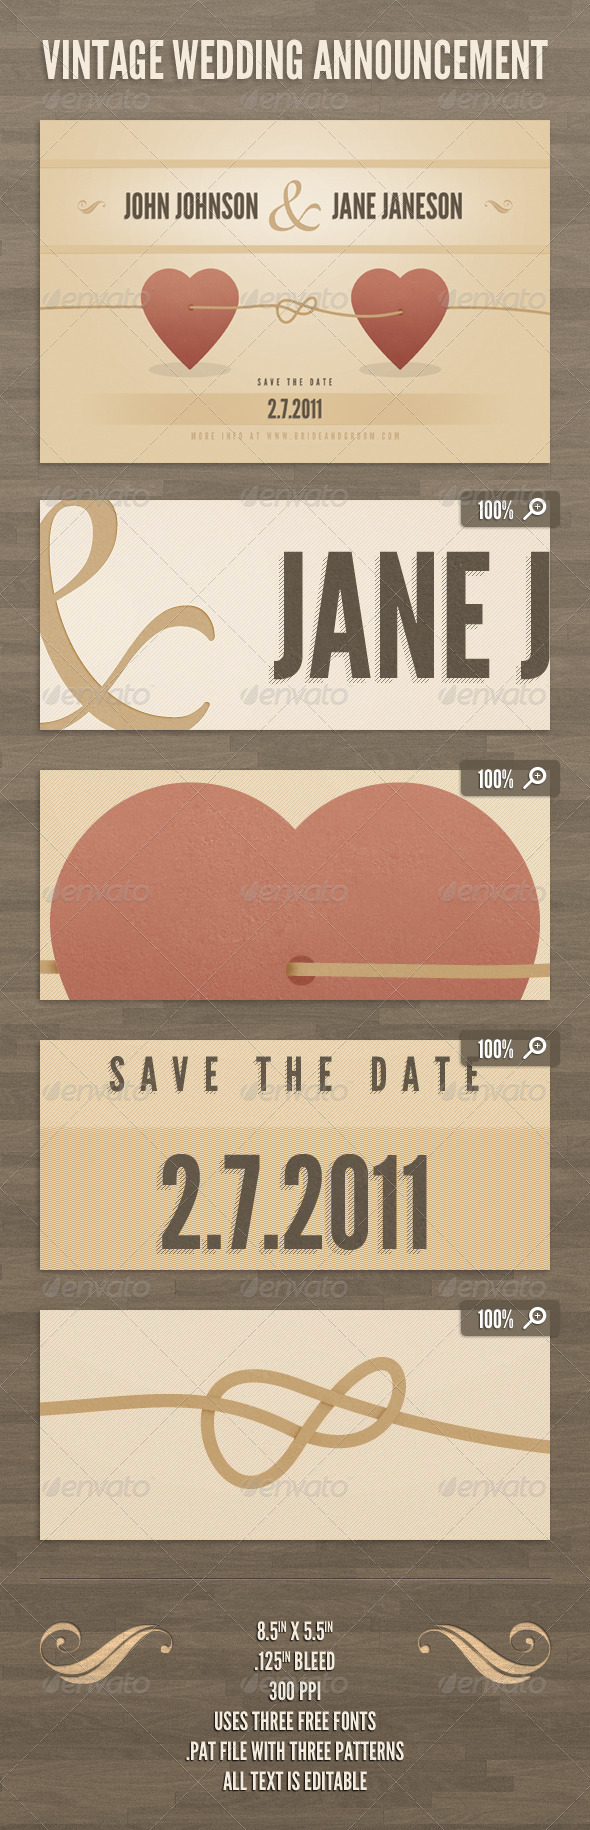 Vintage Wedding Announcement Template - Weddings Cards & Invites